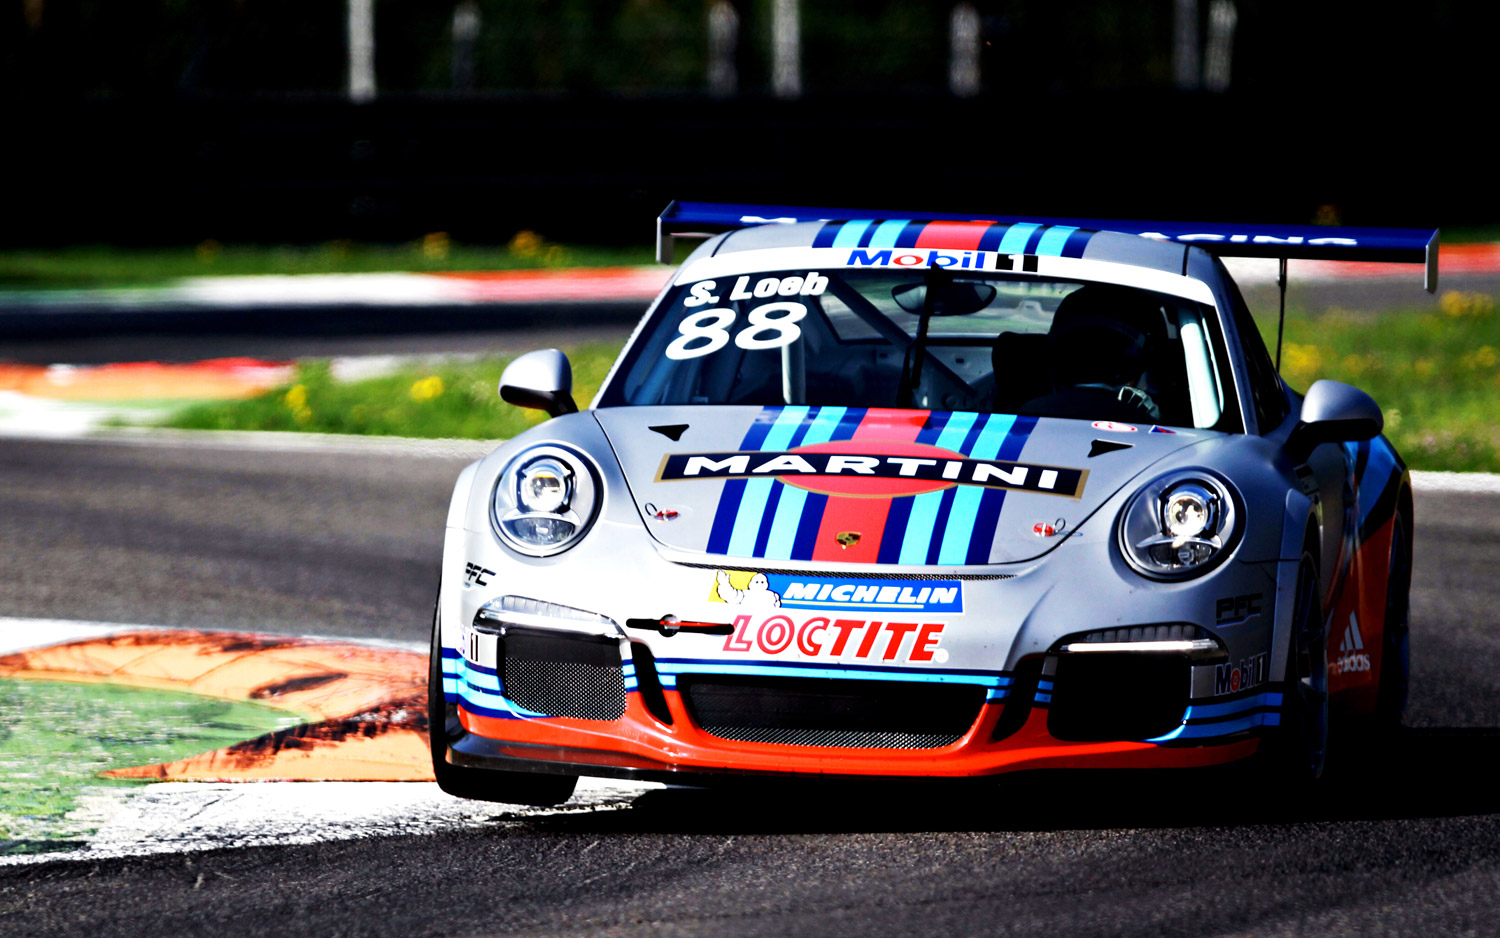 Porsche-911-GT3-Cup-Martini-Livery-front